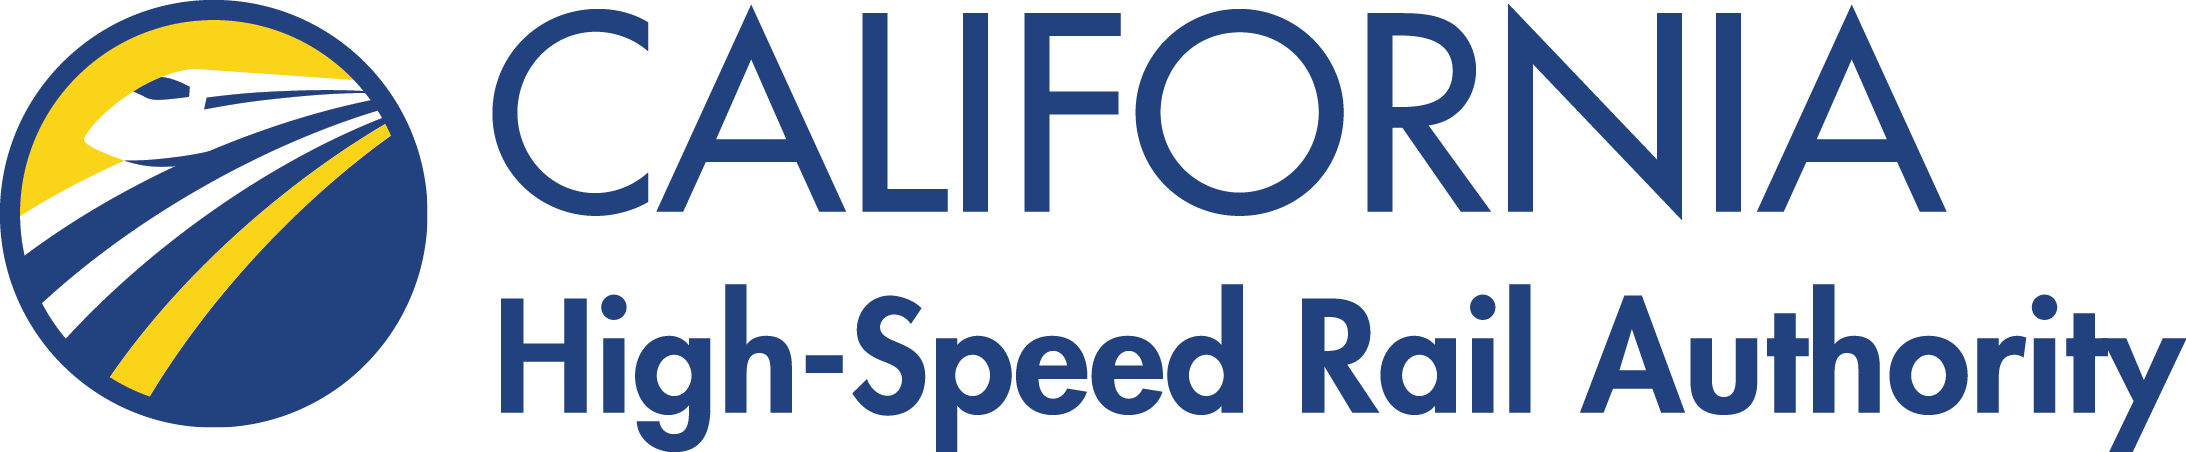 California High-Speed Rail Authority - Home